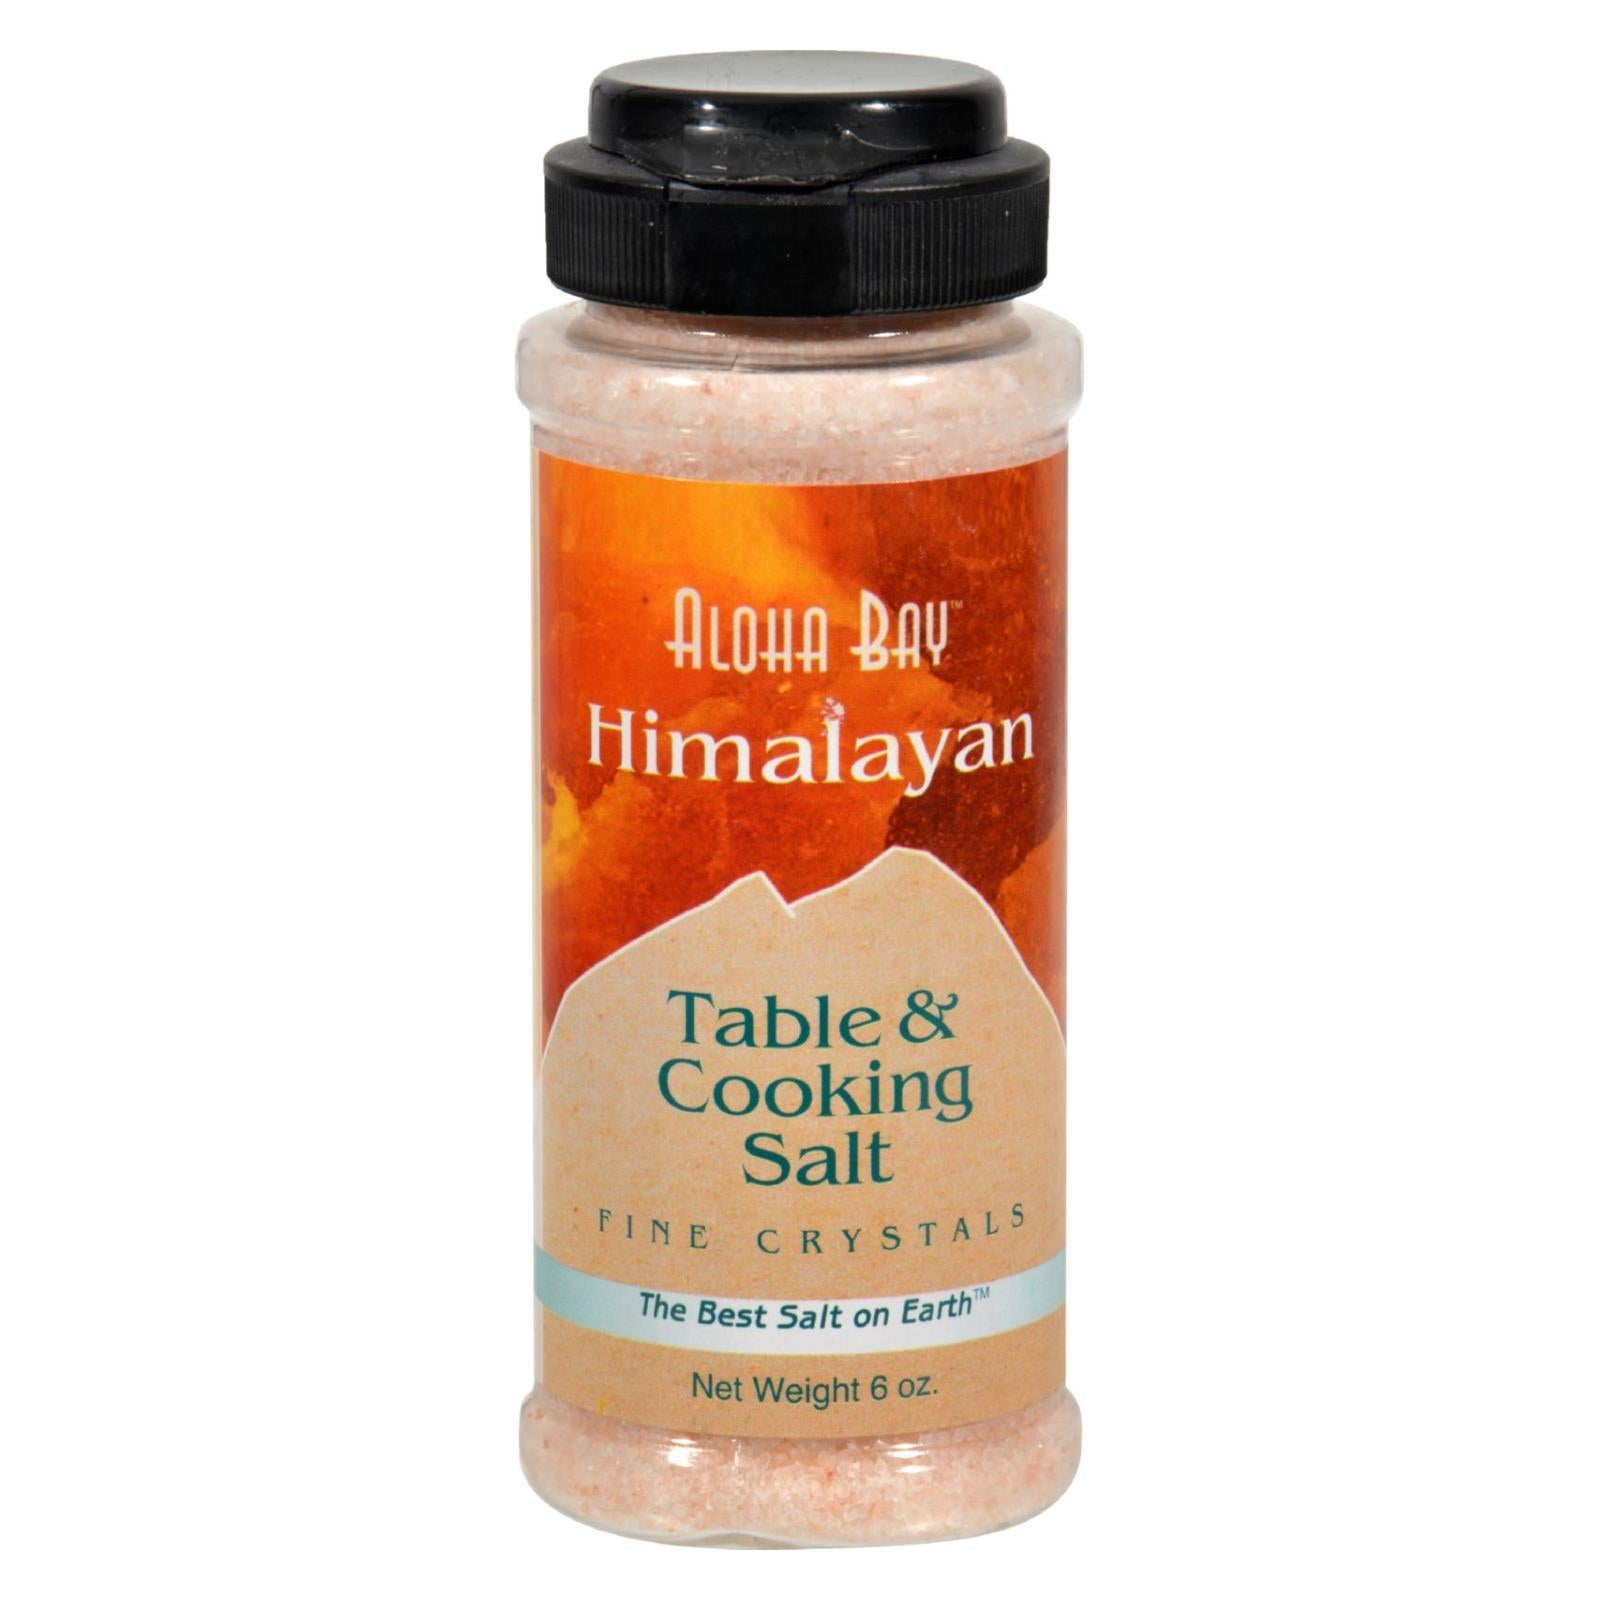 Buy Himalayan Table And Cooking Salt Fine Crystals - 6 oz - Salt, Spices and Seasonings from Veroeco.com